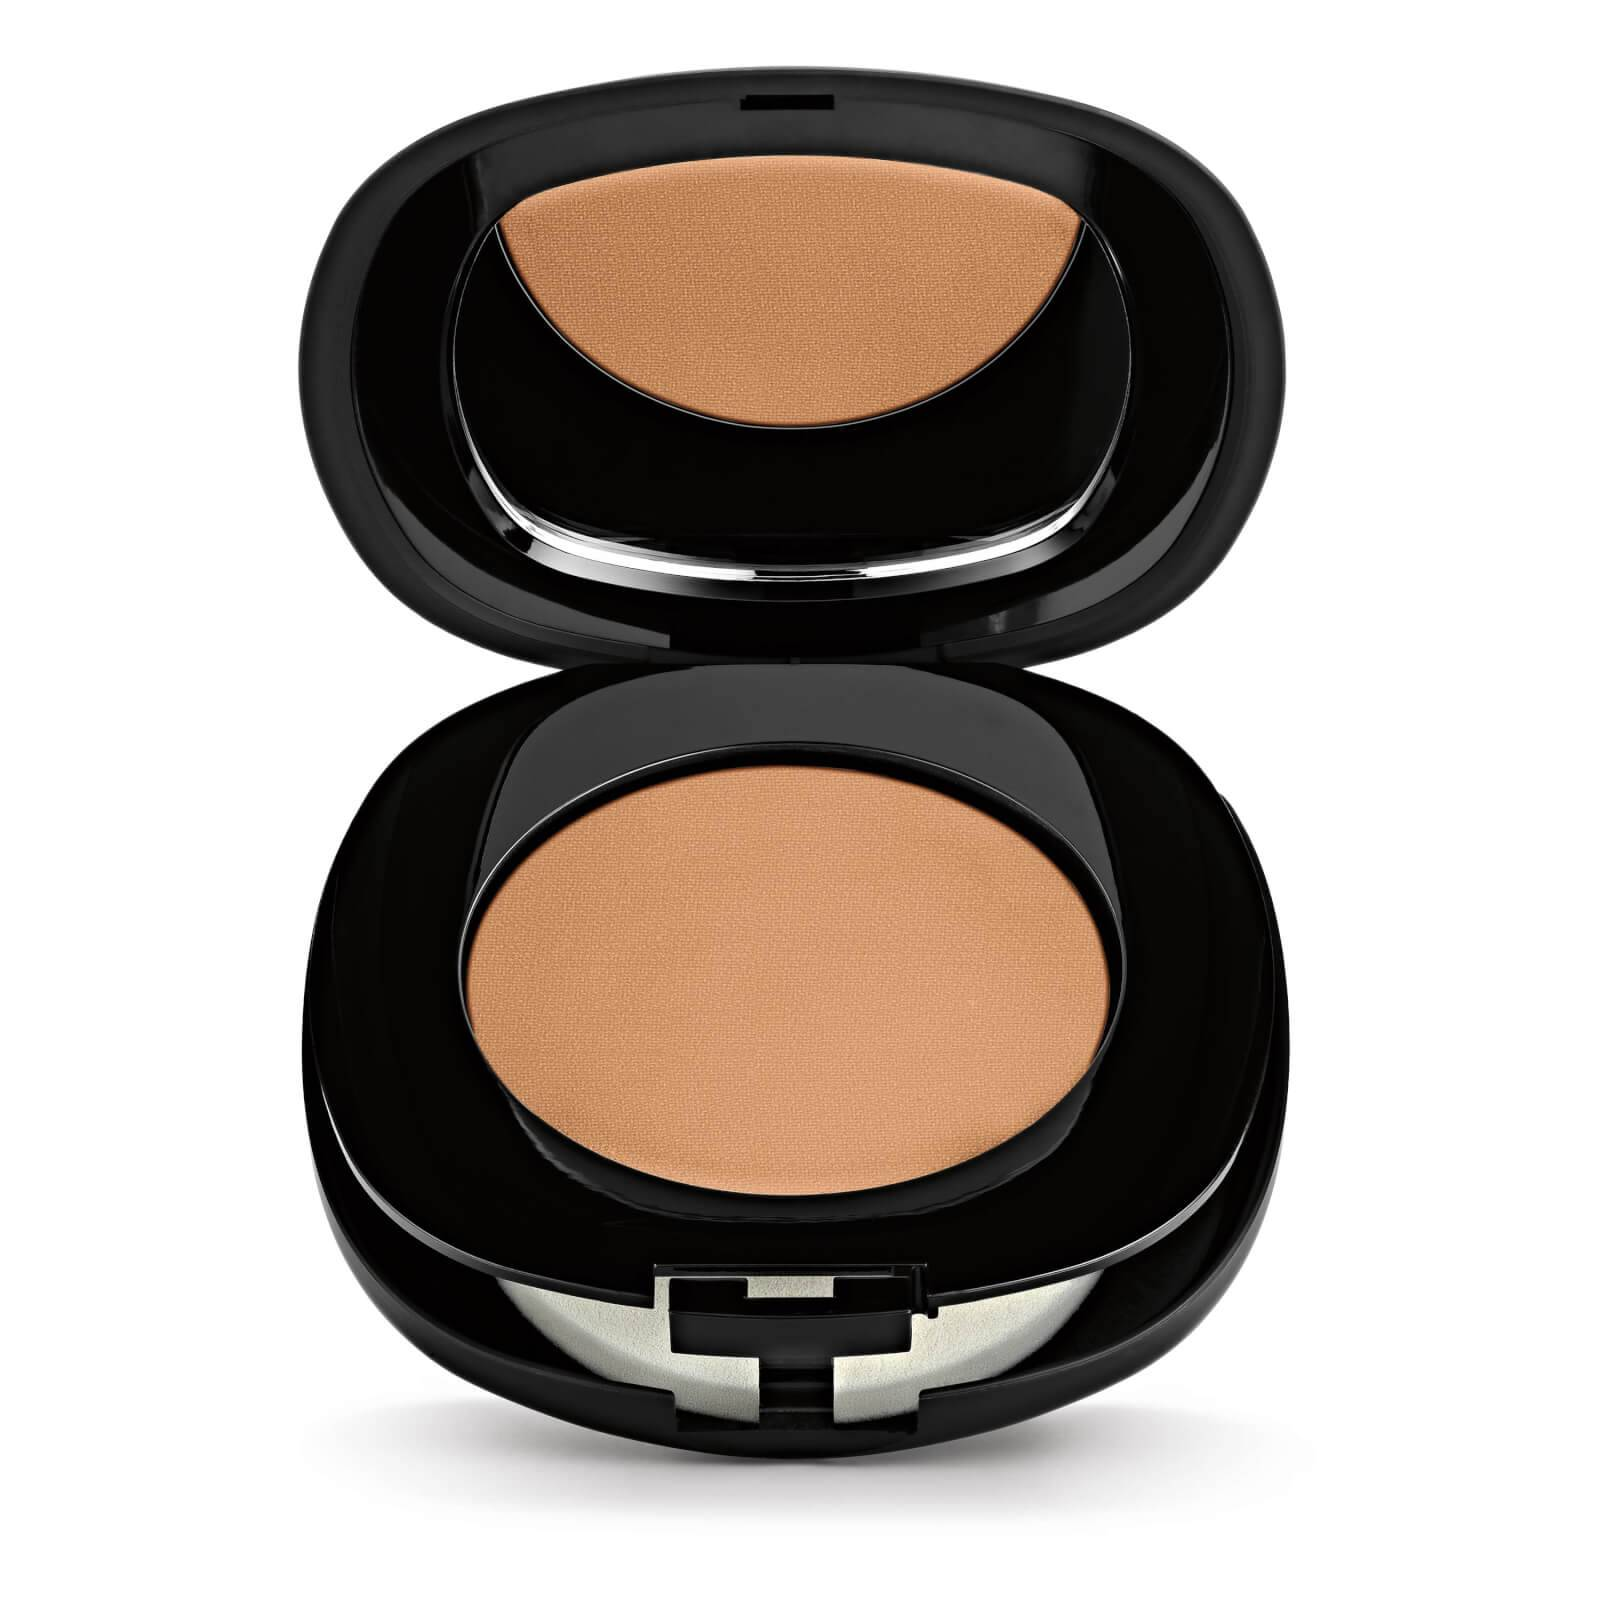 Elisabeth Arden Flawless Finish Everyday Perfection Bouncy Makeup 10g (Various Shades) - Golden Honey 08